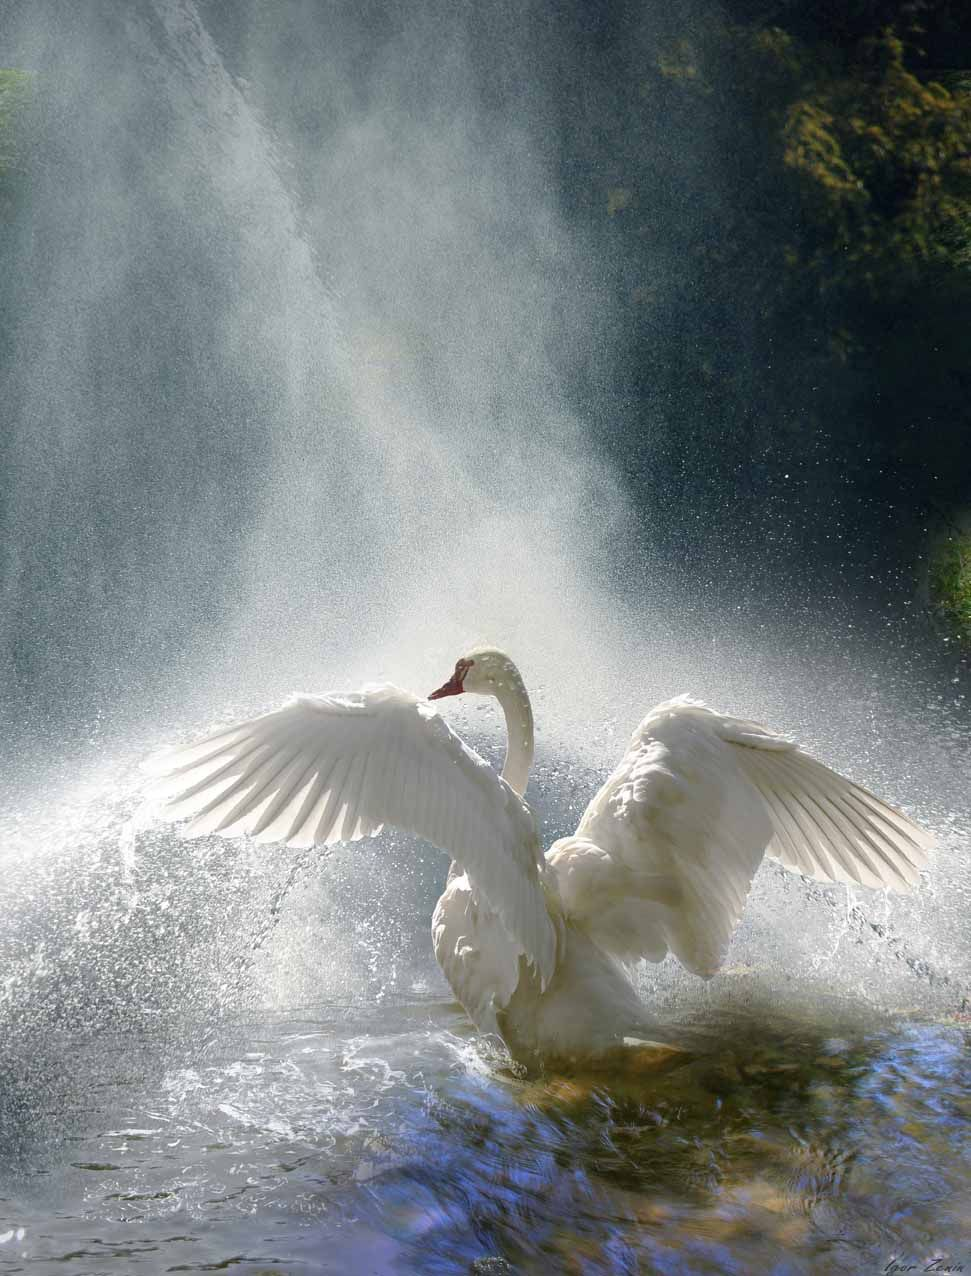 This beautiful swan embraced a man in gratitude for his salvation